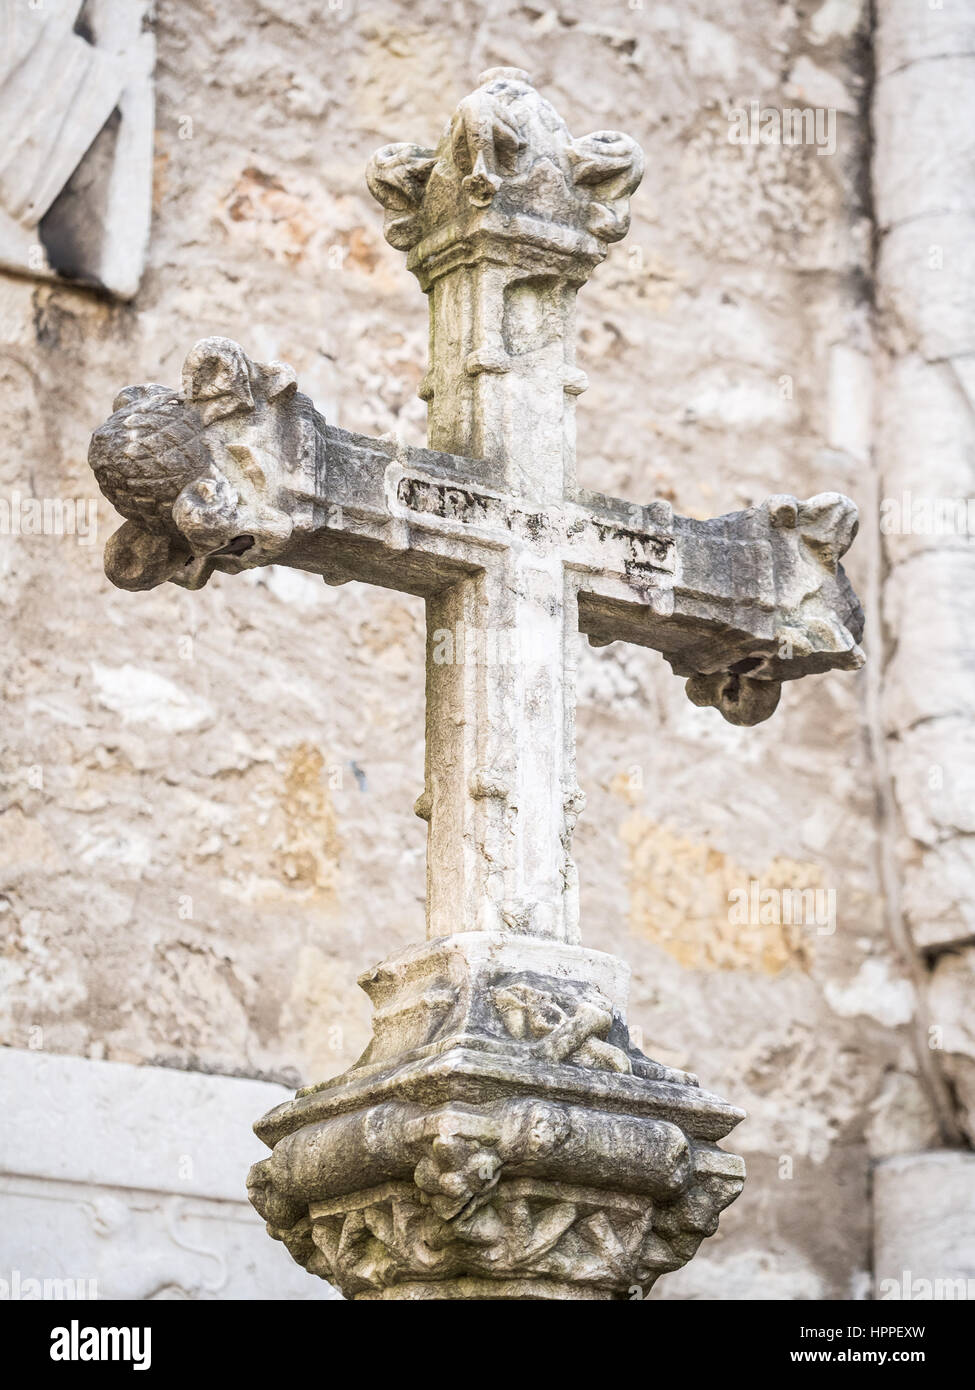 Stone cross in rhw Convent of Our Lady of Mount Carmel (Portuguese: Convento da Ordem do Carmo) in Lisbon, Portugal. - Stock Image